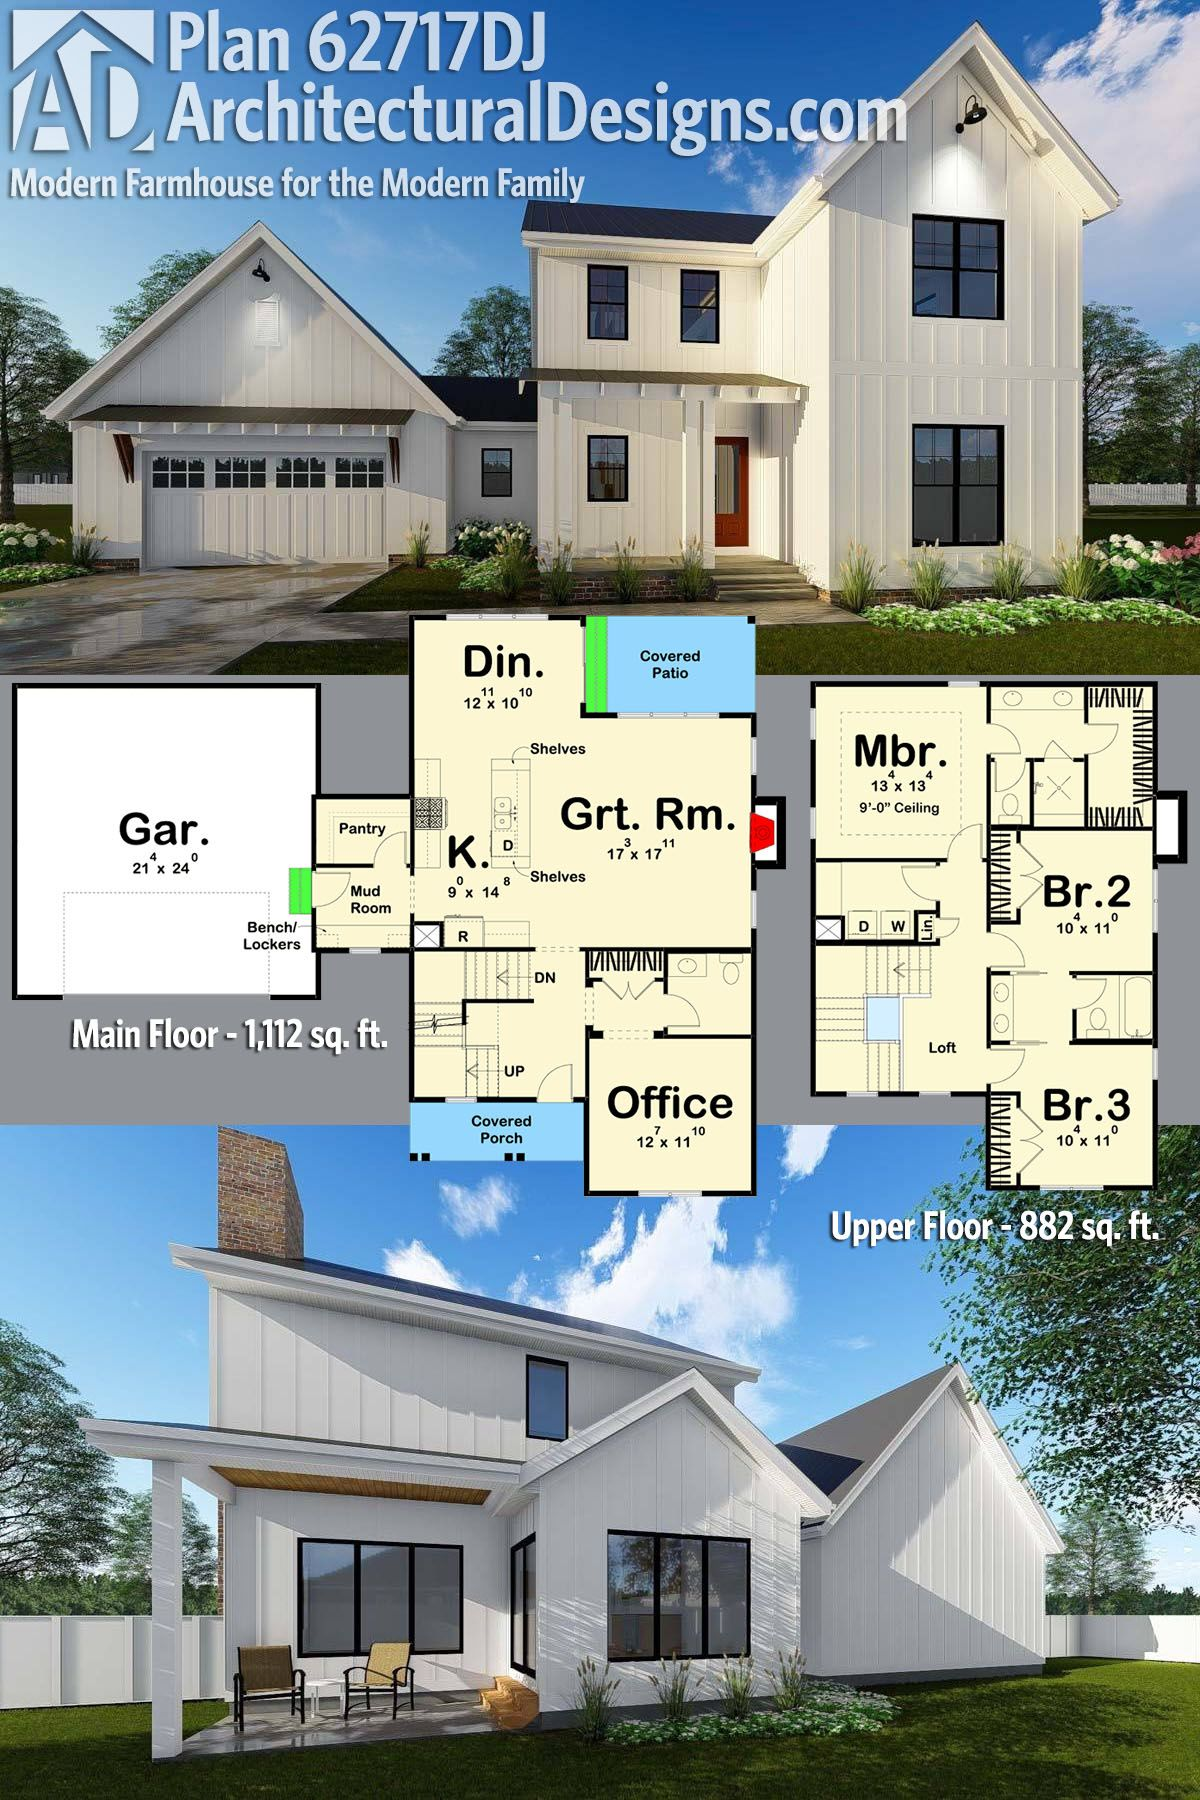 Architectural Designs 2 Story Modern Farmhouse Plan gives